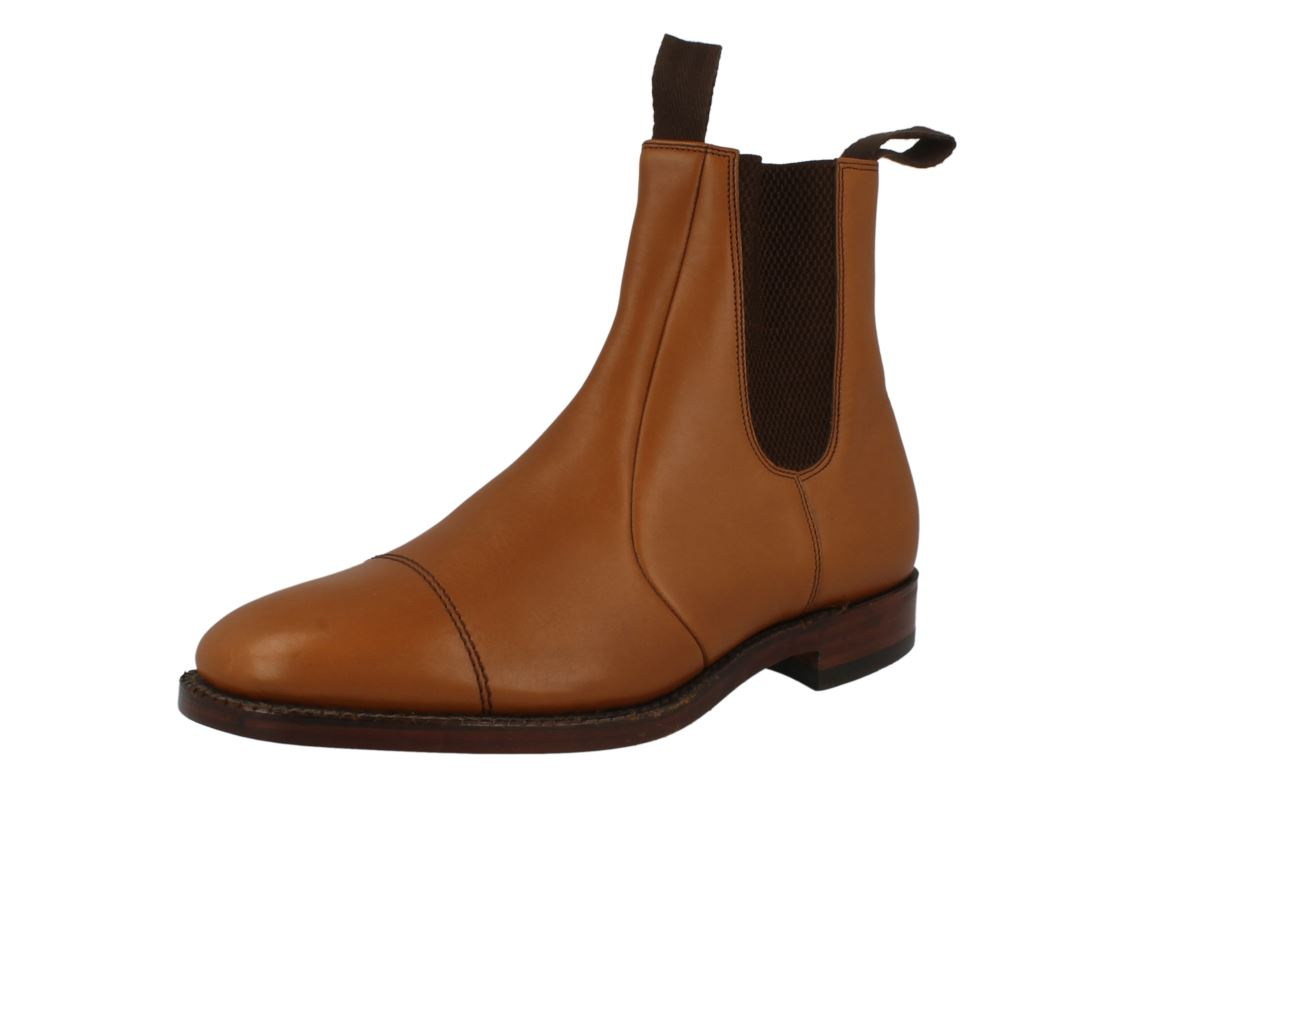 Mens Loake Leather Chelsea - / Dealer Style Boots - Chelsea Newbury 828138